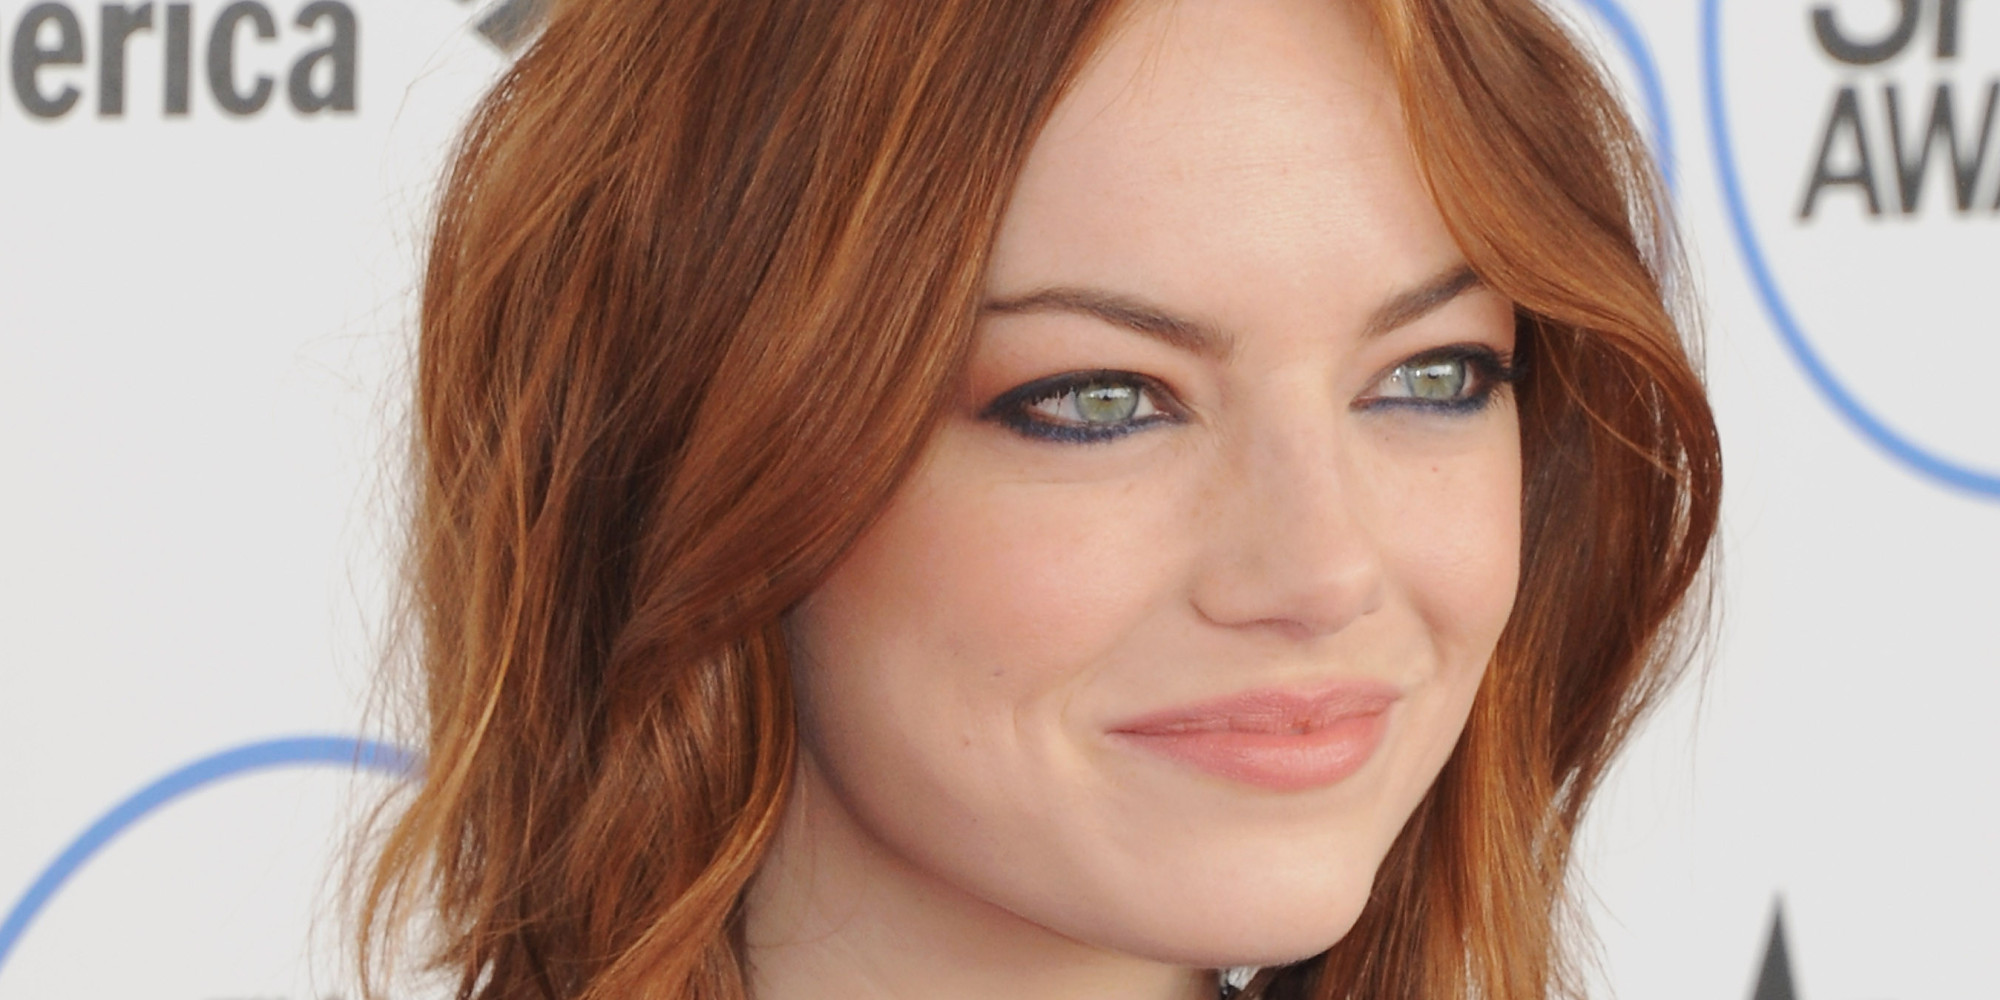 Where Is Emma Stone's Apology For Whitewashing? | HuffPost Emma Stone